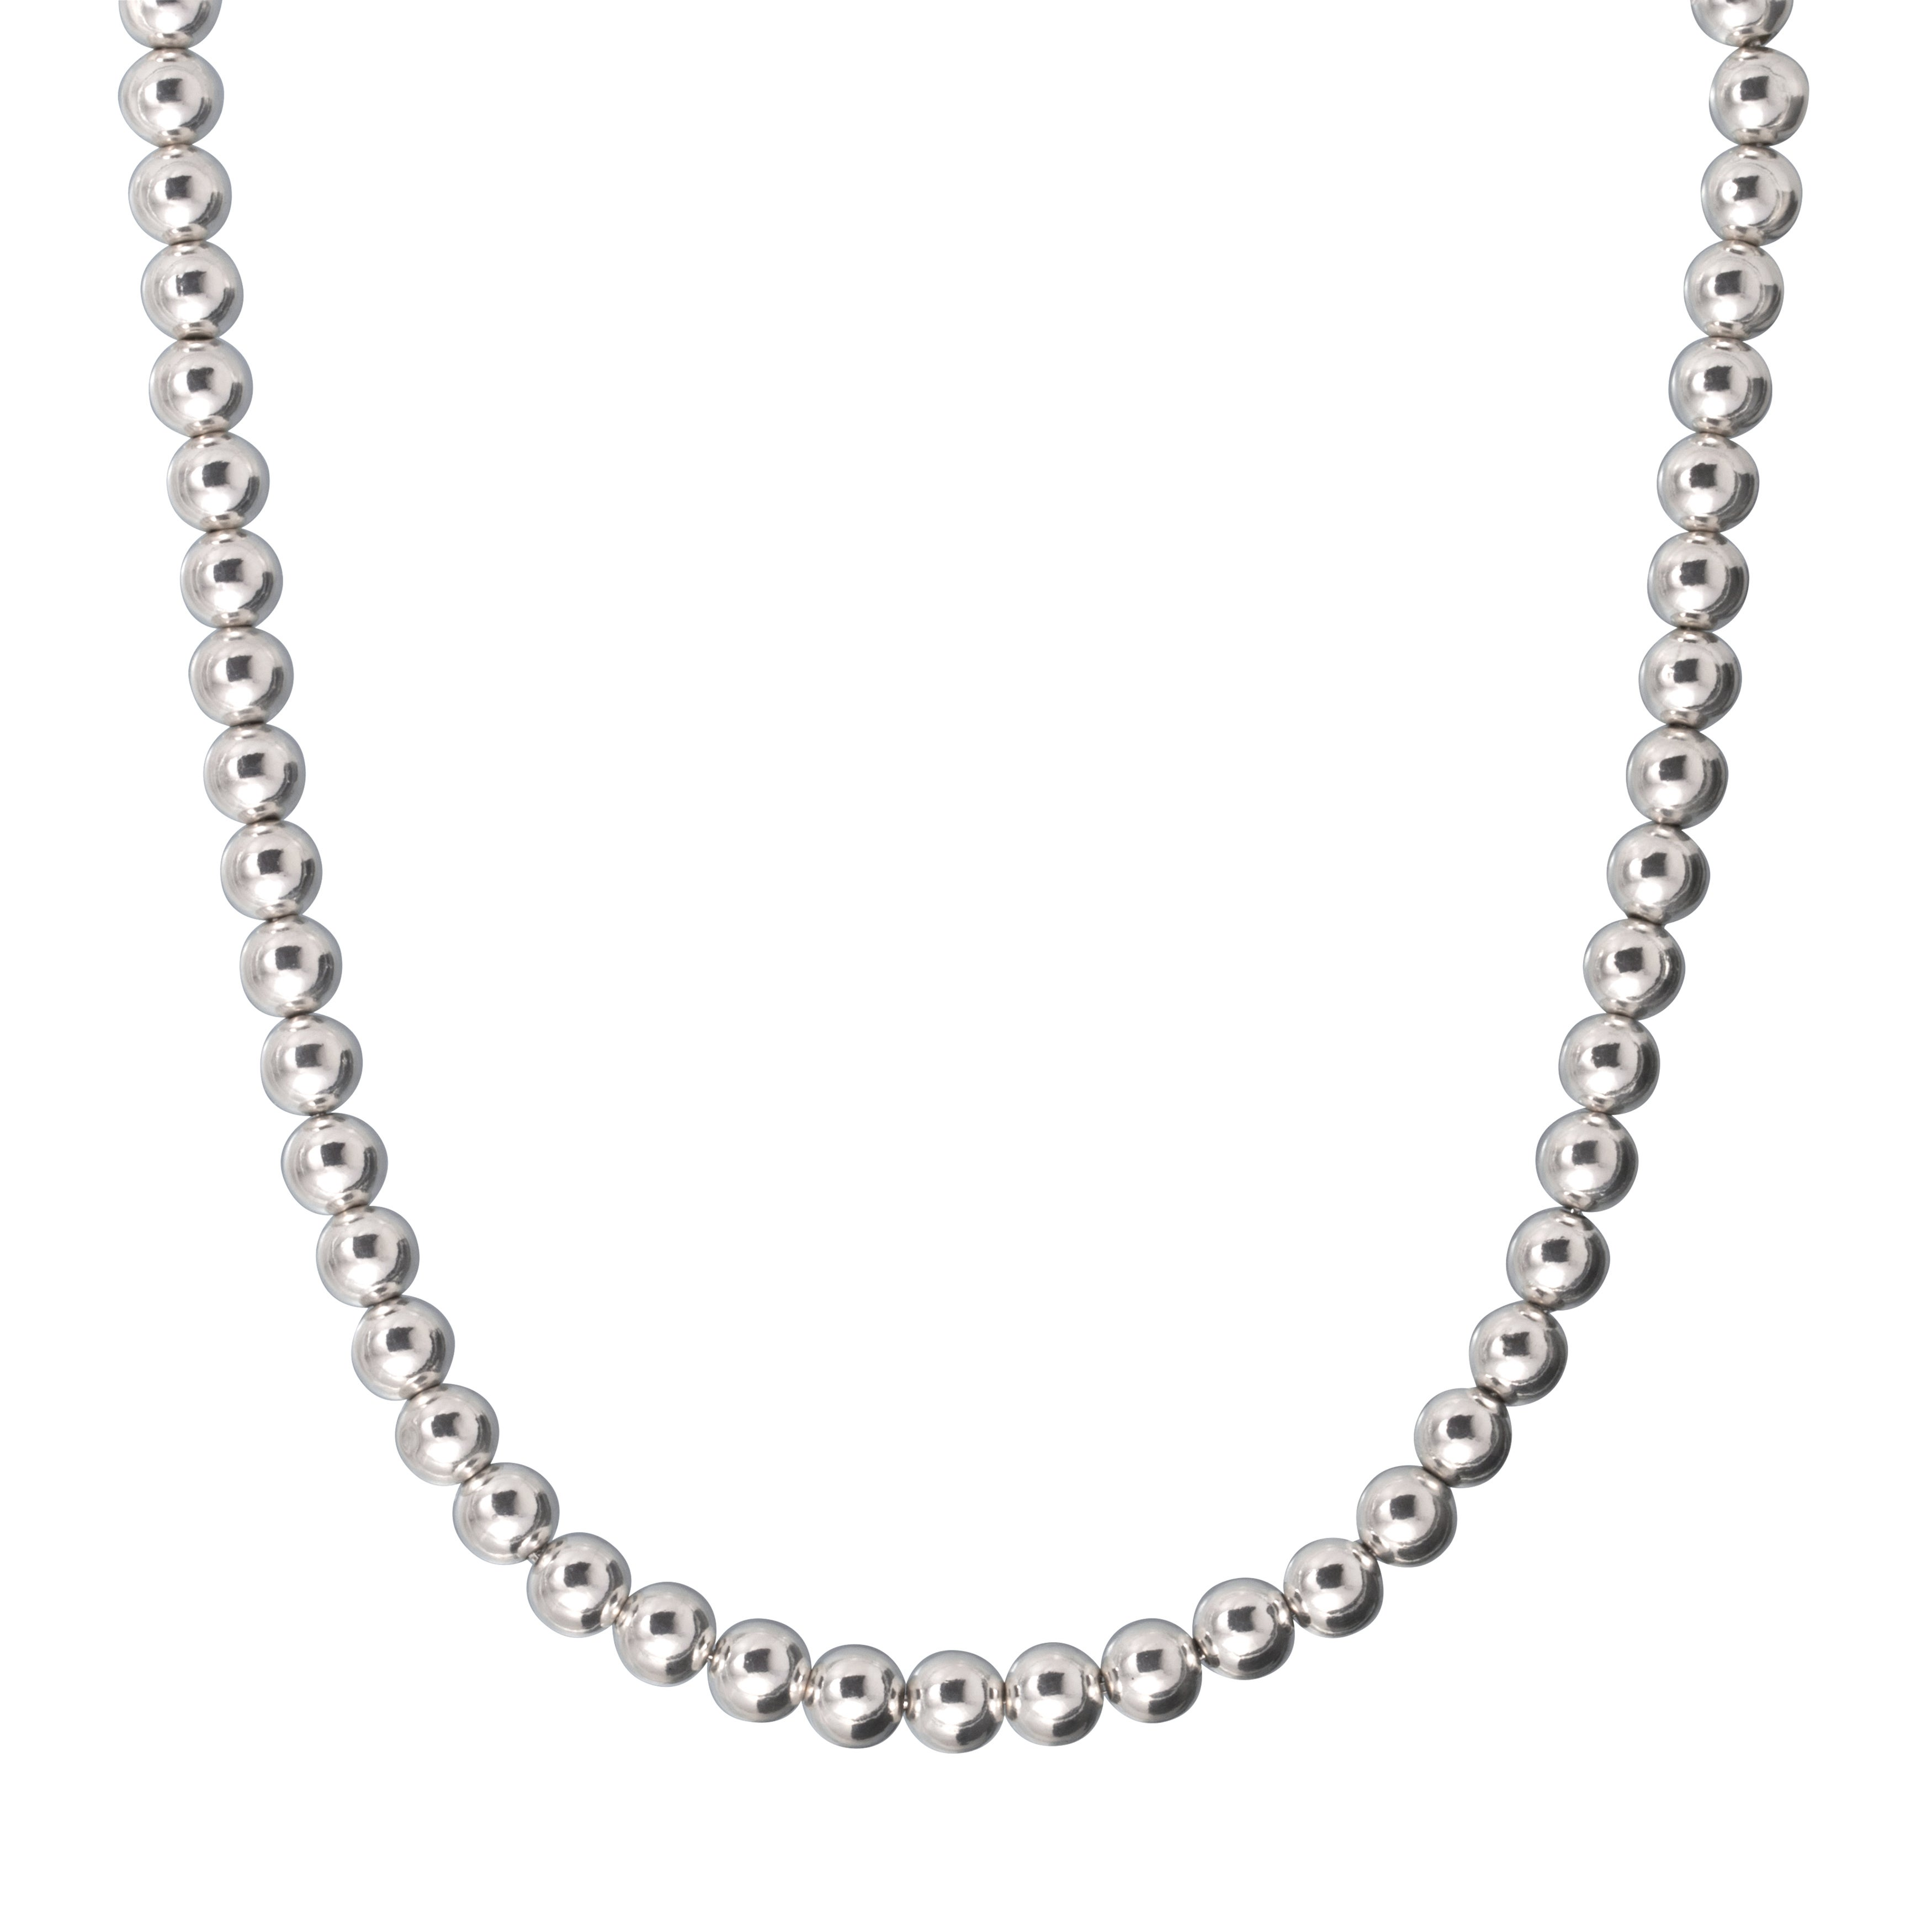 USA Karizia Sterling Silver 6 mm Bead Necklace (18 Inch W...